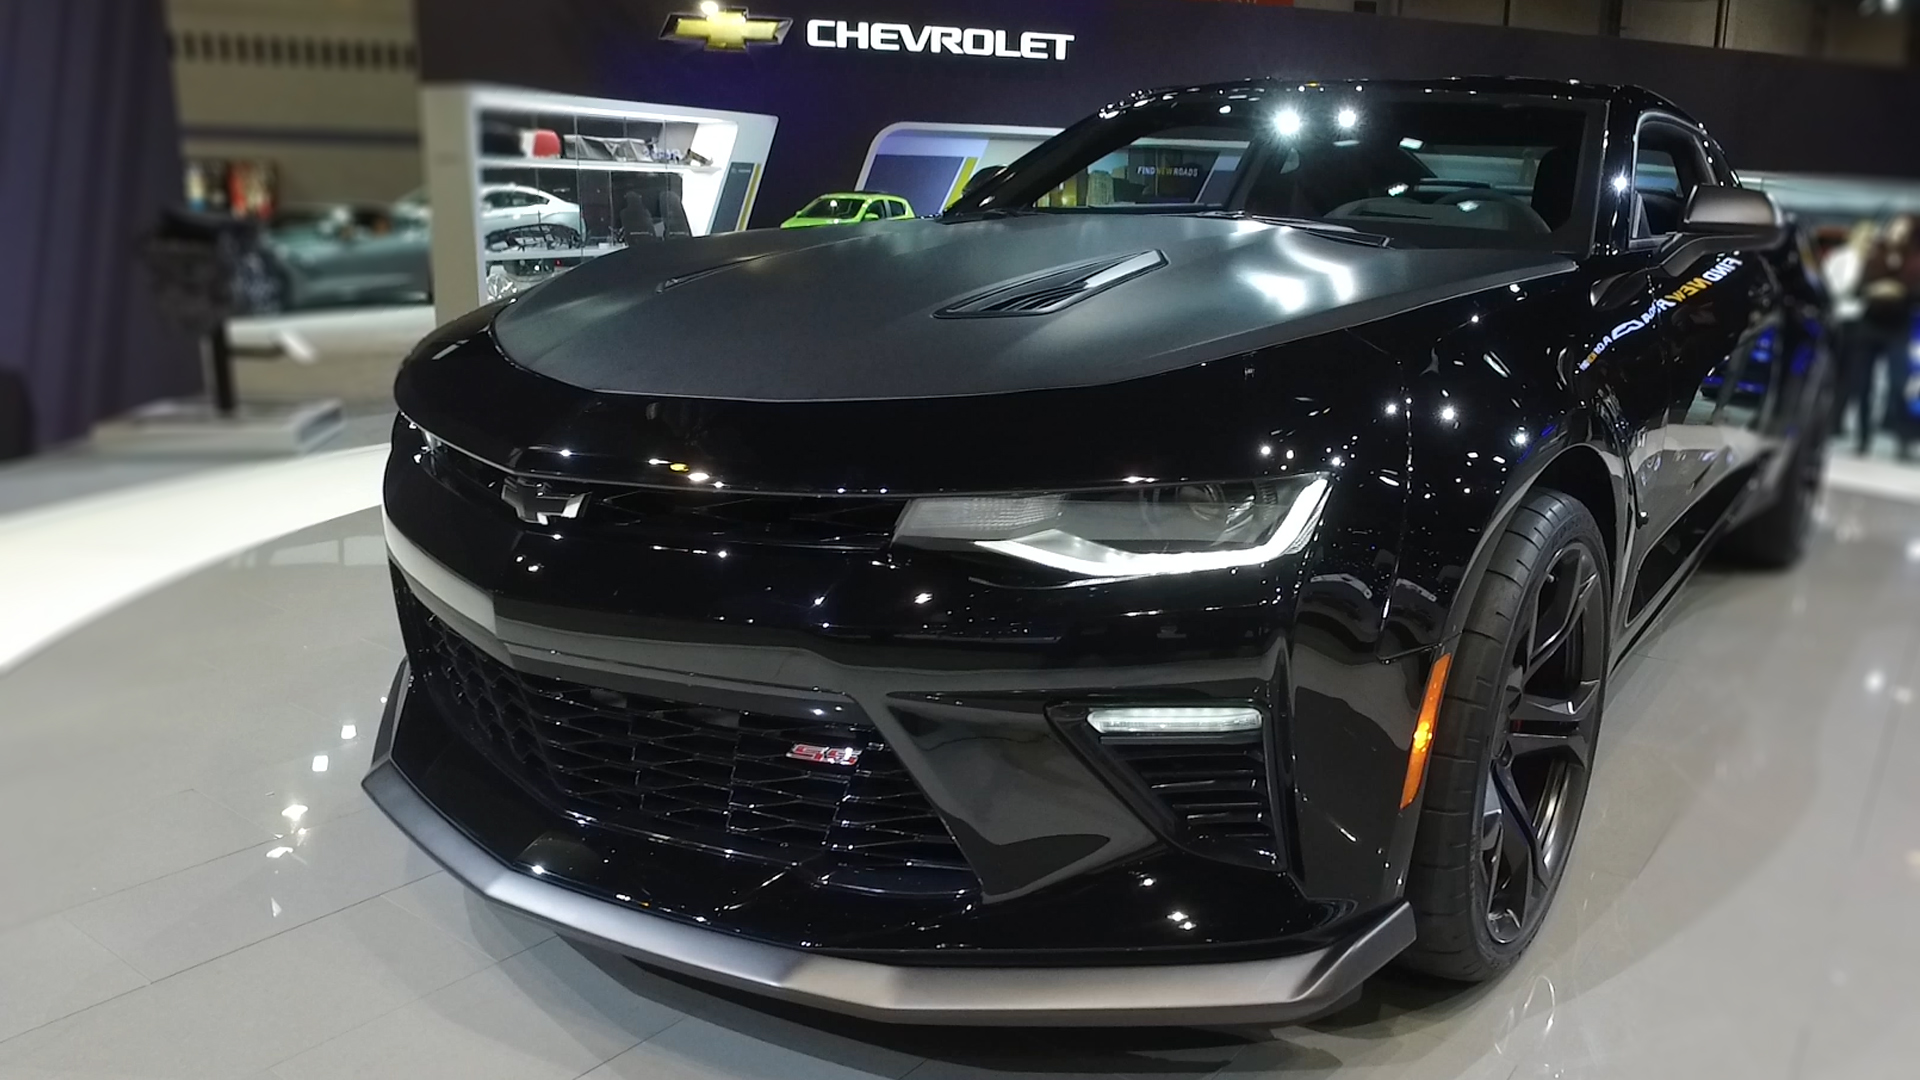 Video: 1LE performance package turns the Chevrolet Camaro into an affordable track star